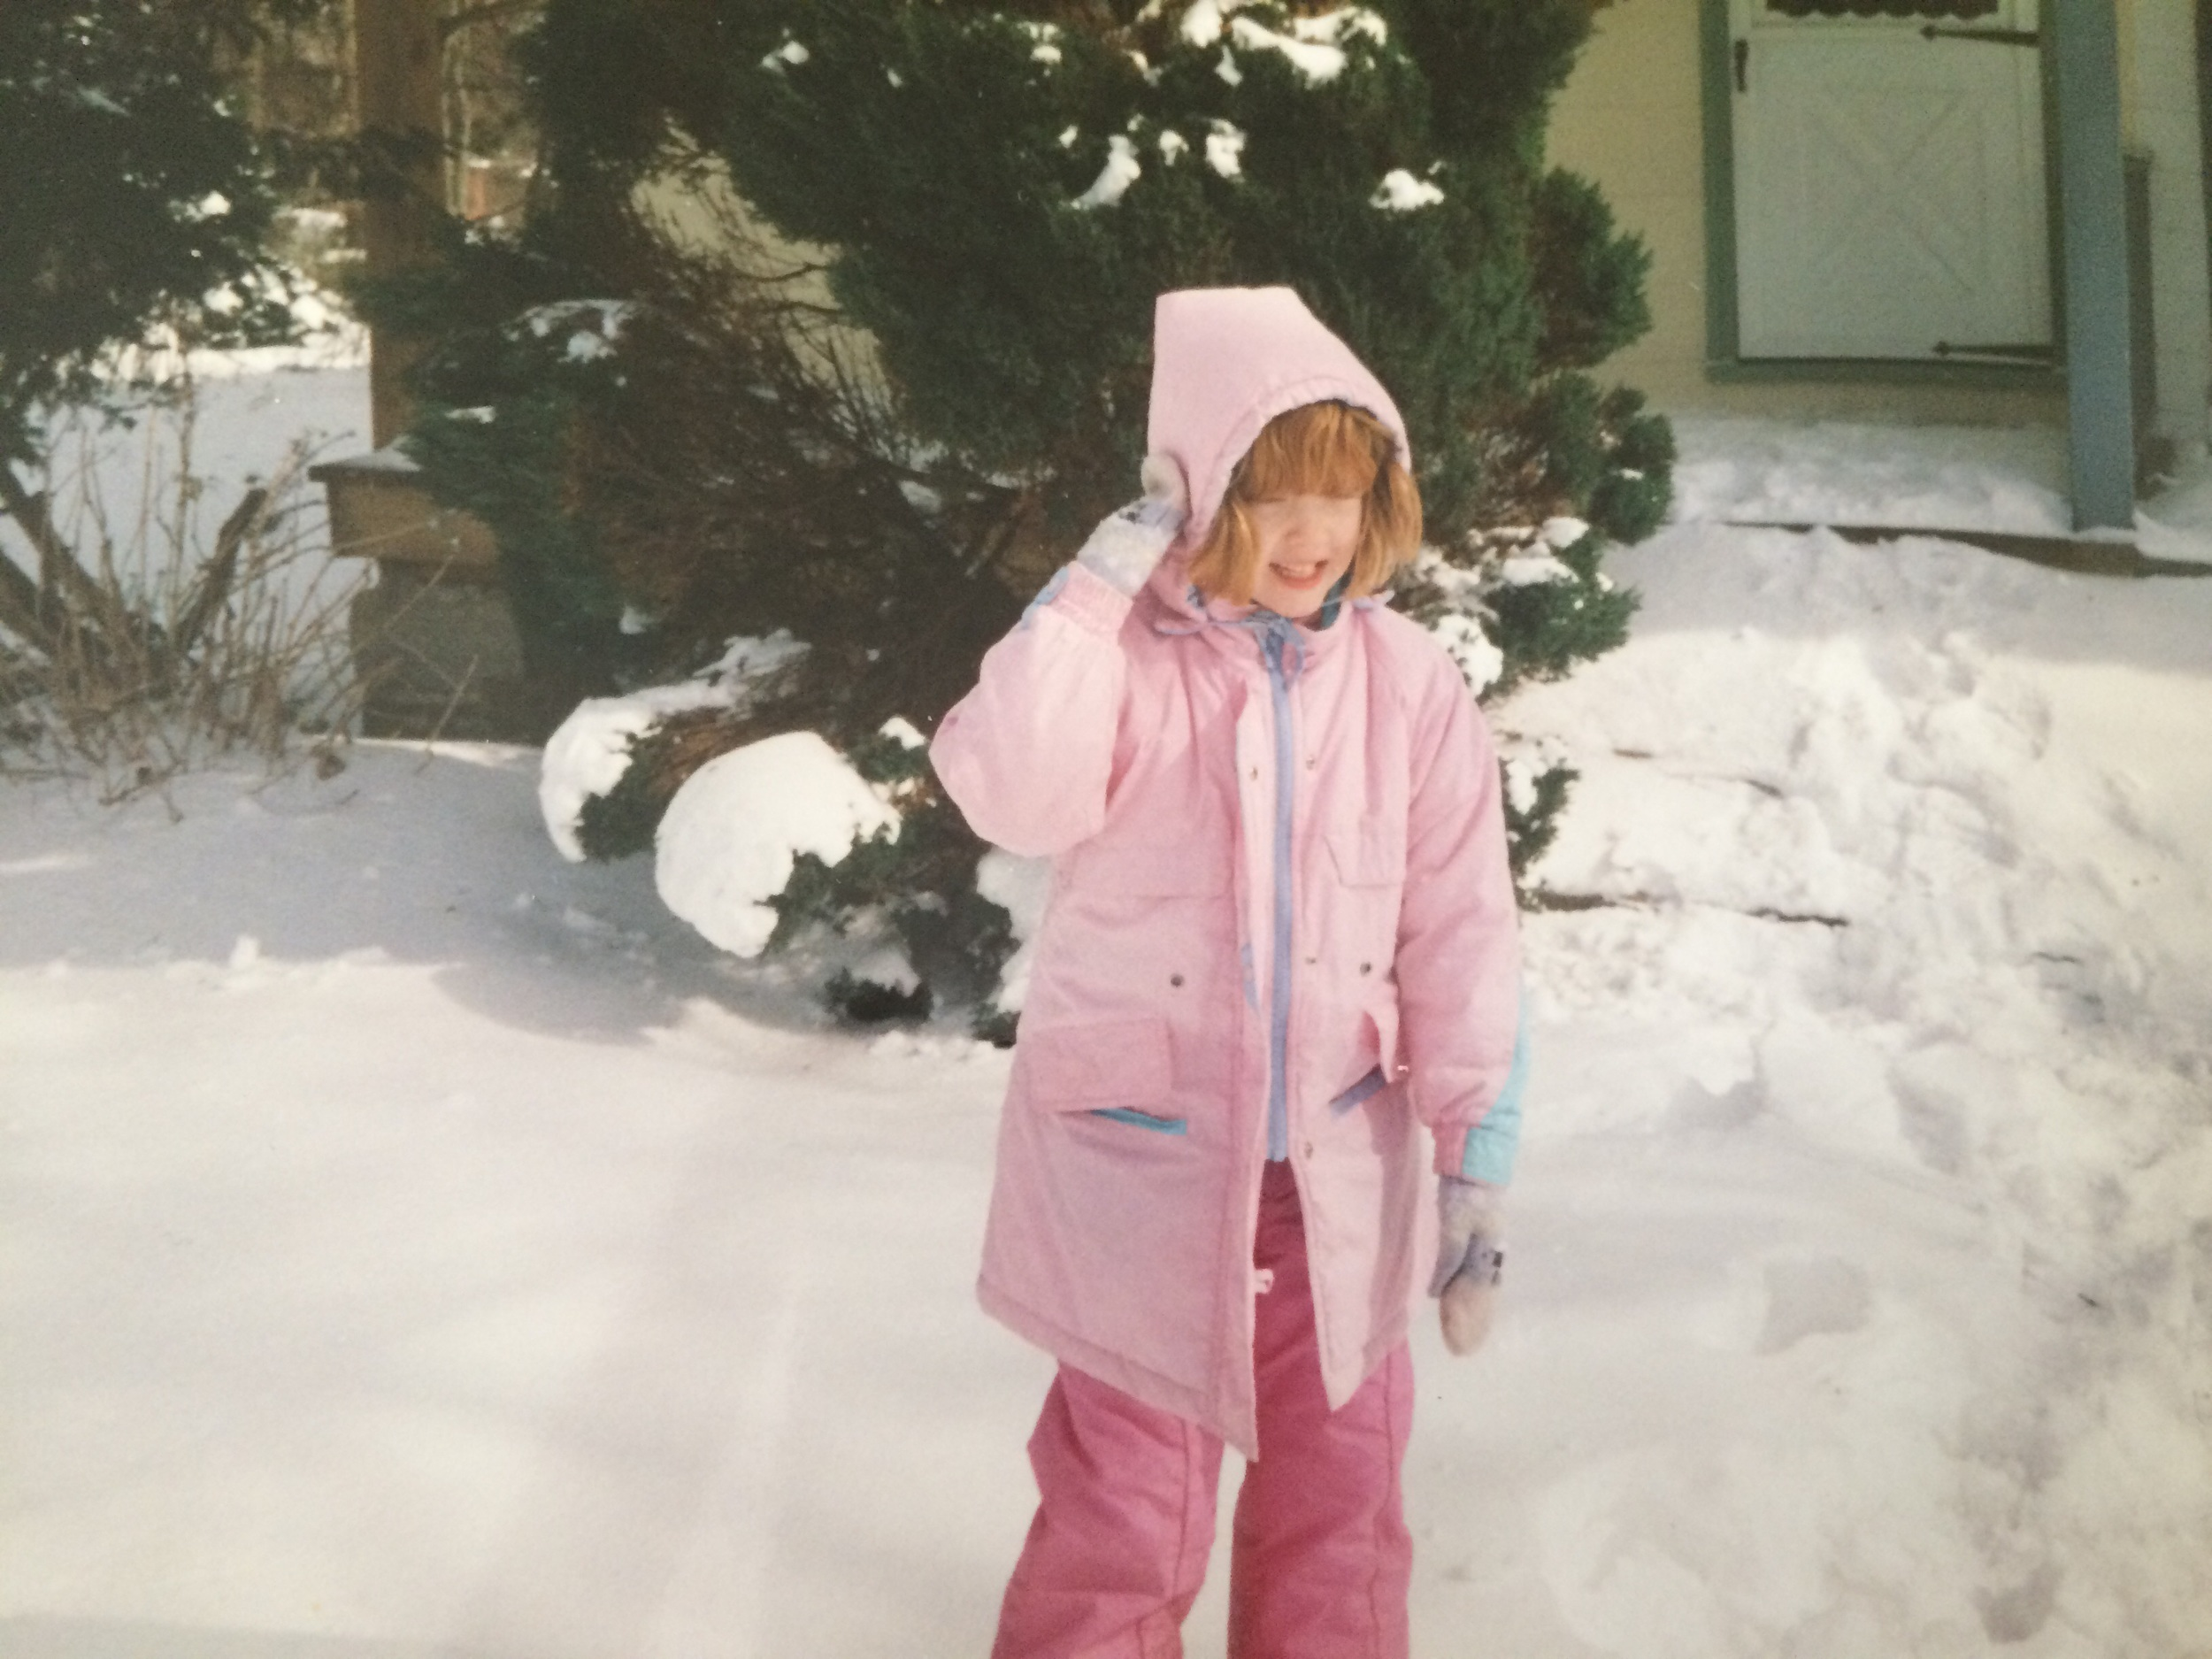 Sadly, you can't see my furry, bejeweled pink snow boots, which also went spectacularly with my Catholic school uniform!